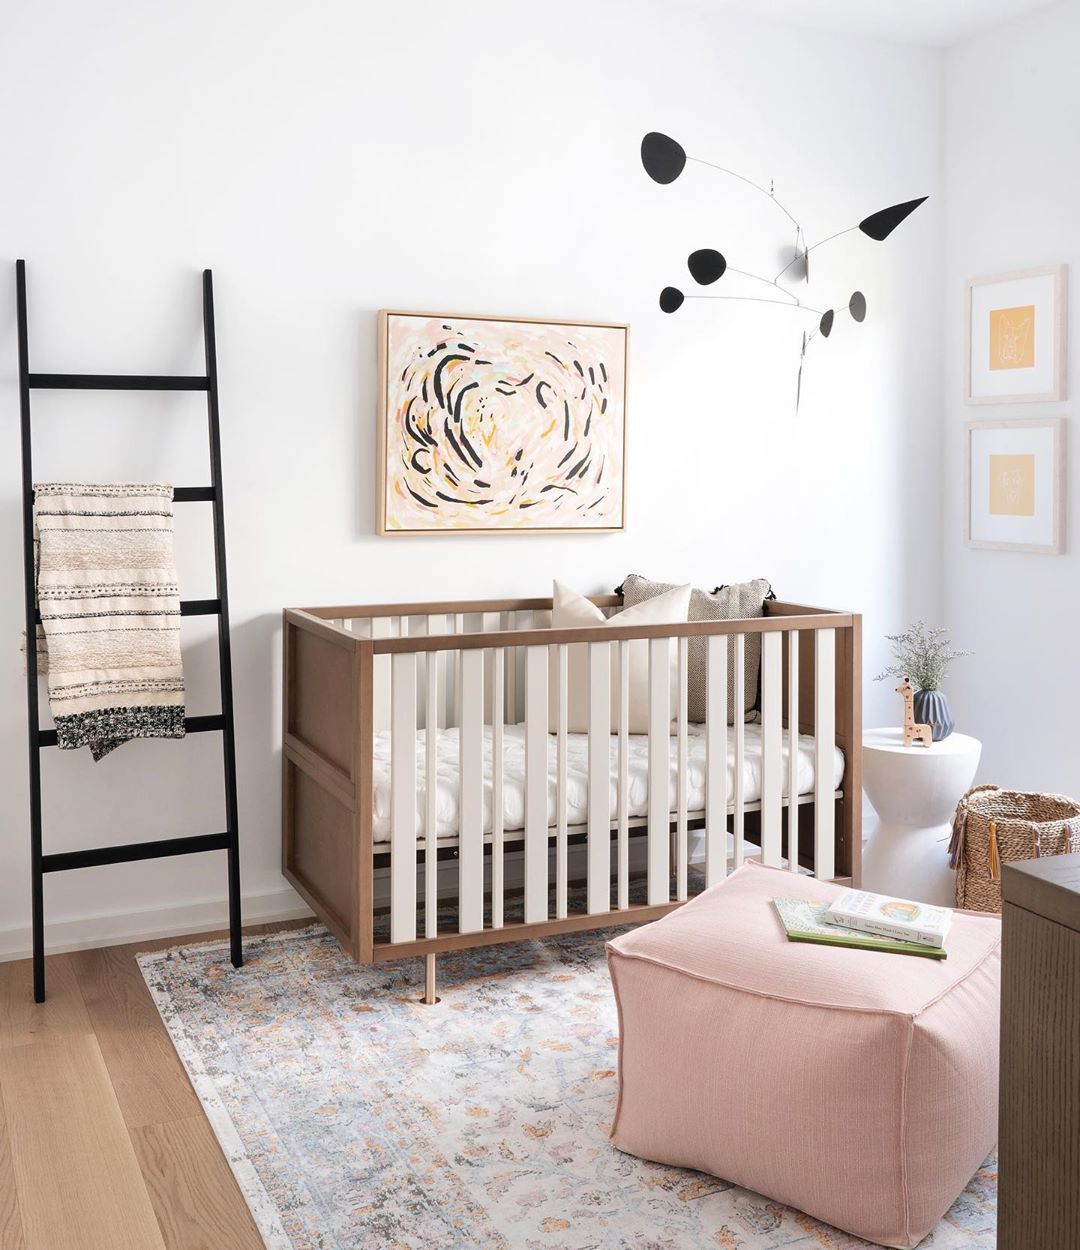 Cute Simple Modern Nursery From Our Projectteambull This Room Wasn T Originally In The Plans But Was Nursery Room Design Modern Nursery Nursery Room Decor